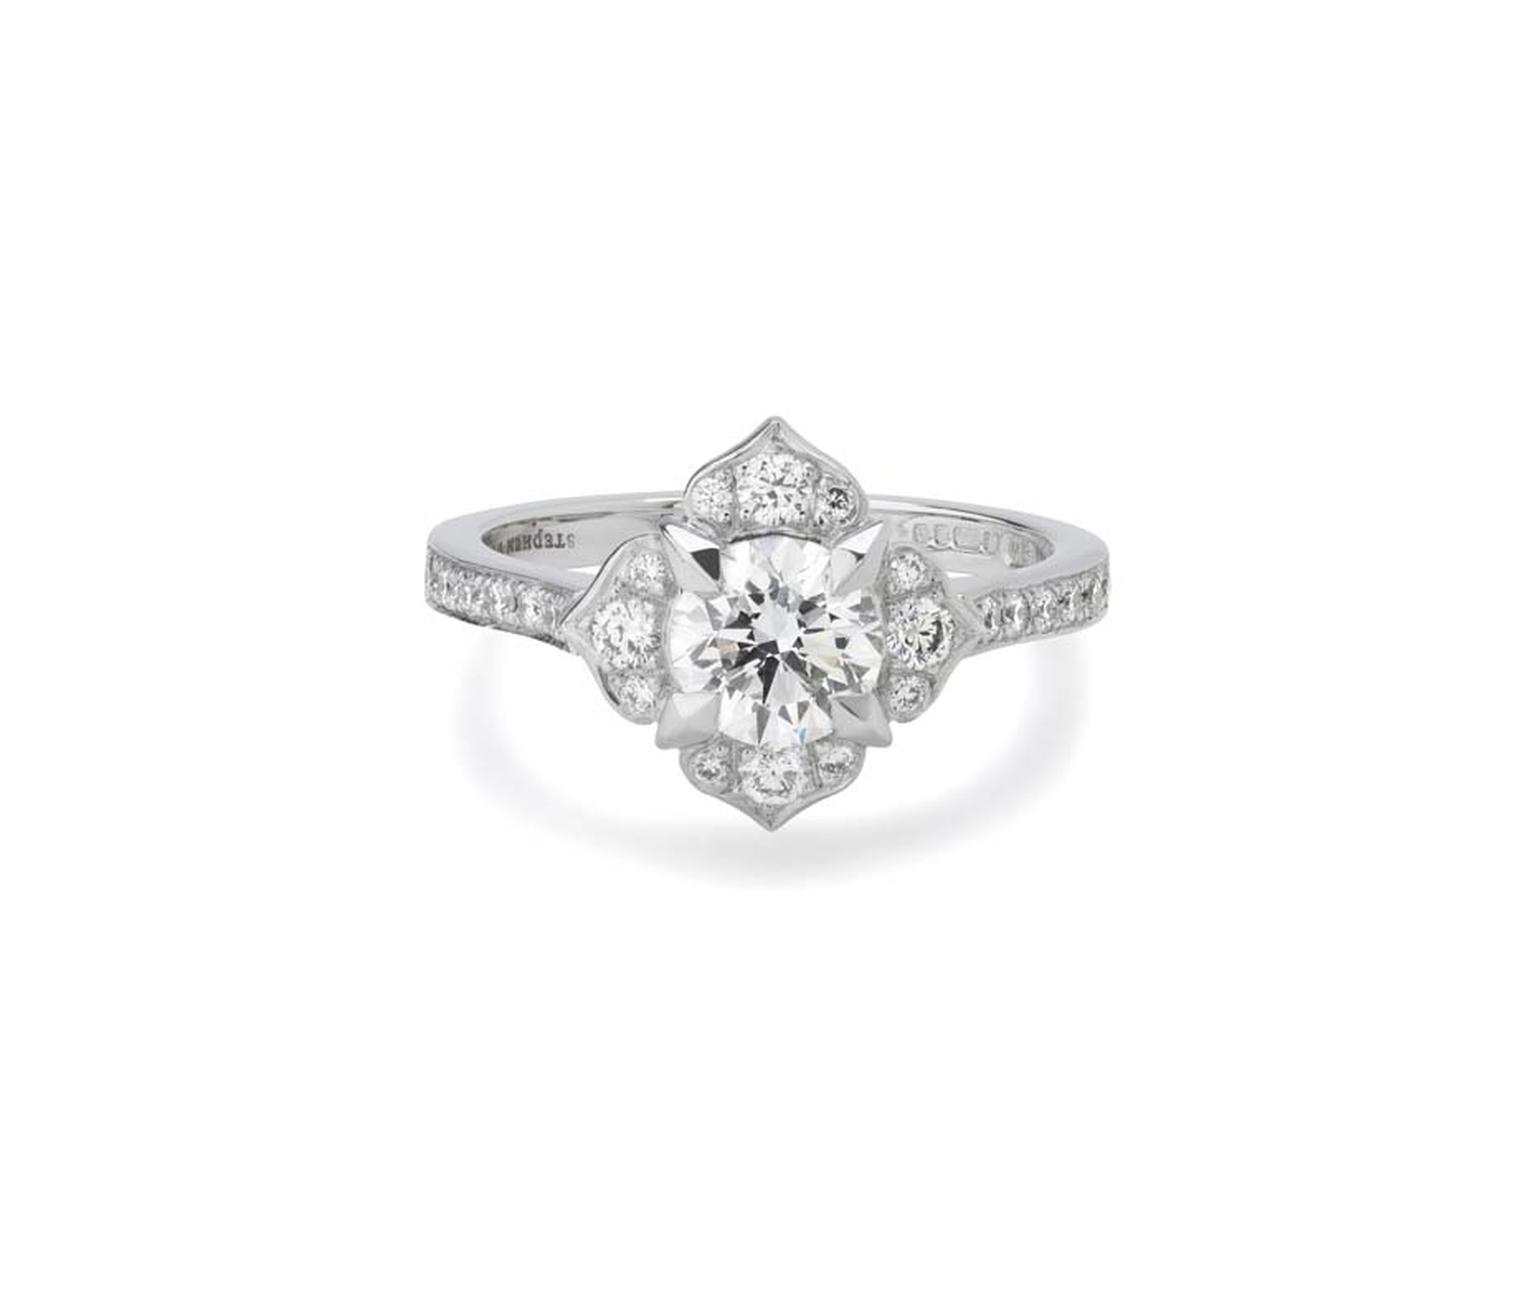 Stephen Webster's Bridal Collection 'Heritage' Fleur engagement ring with Forevermark diamonds.